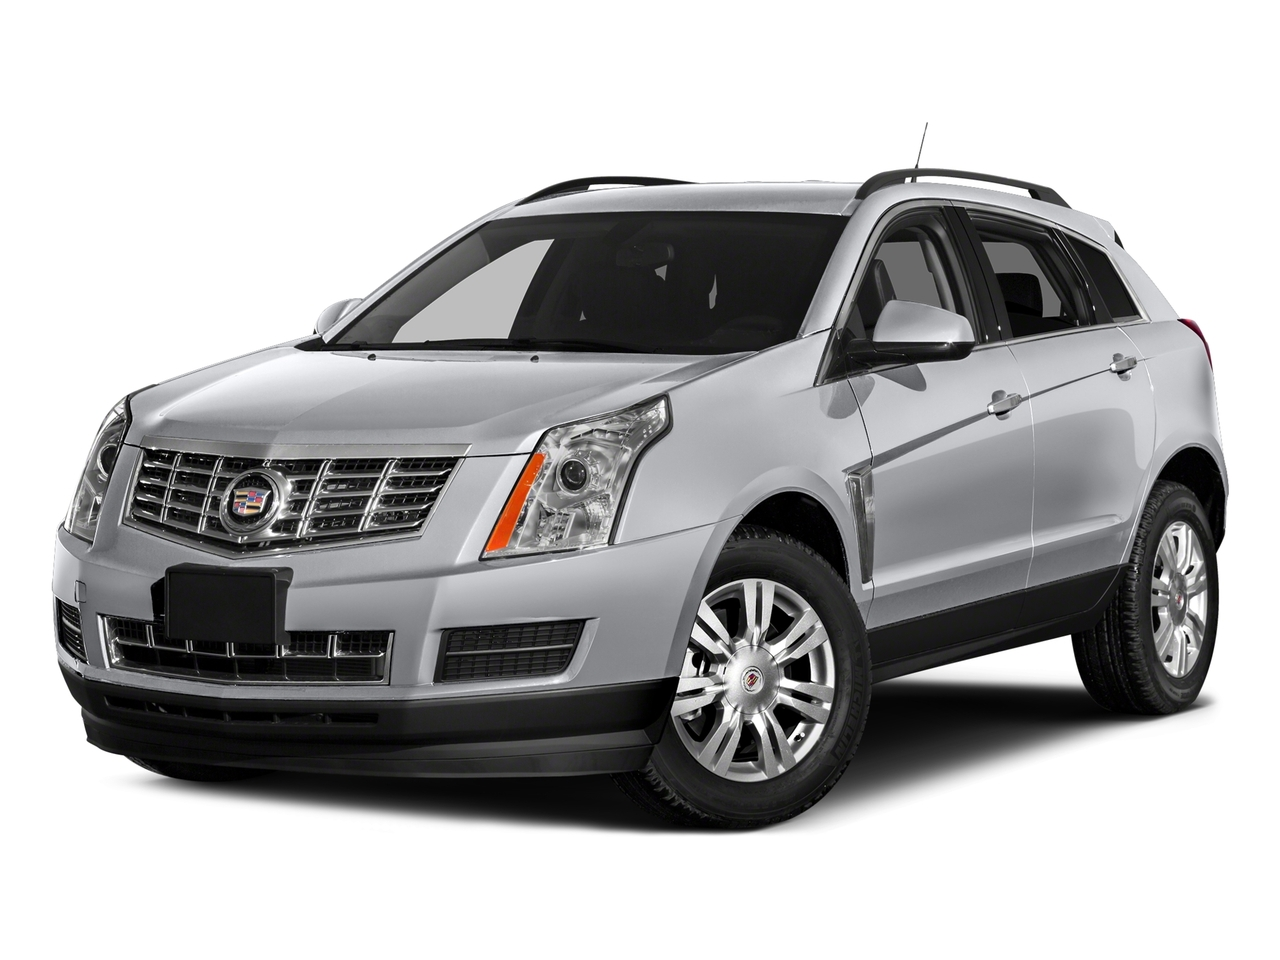 2016 Cadillac SRX FWD 4DR LUXURY COLLECTION SUV Slide